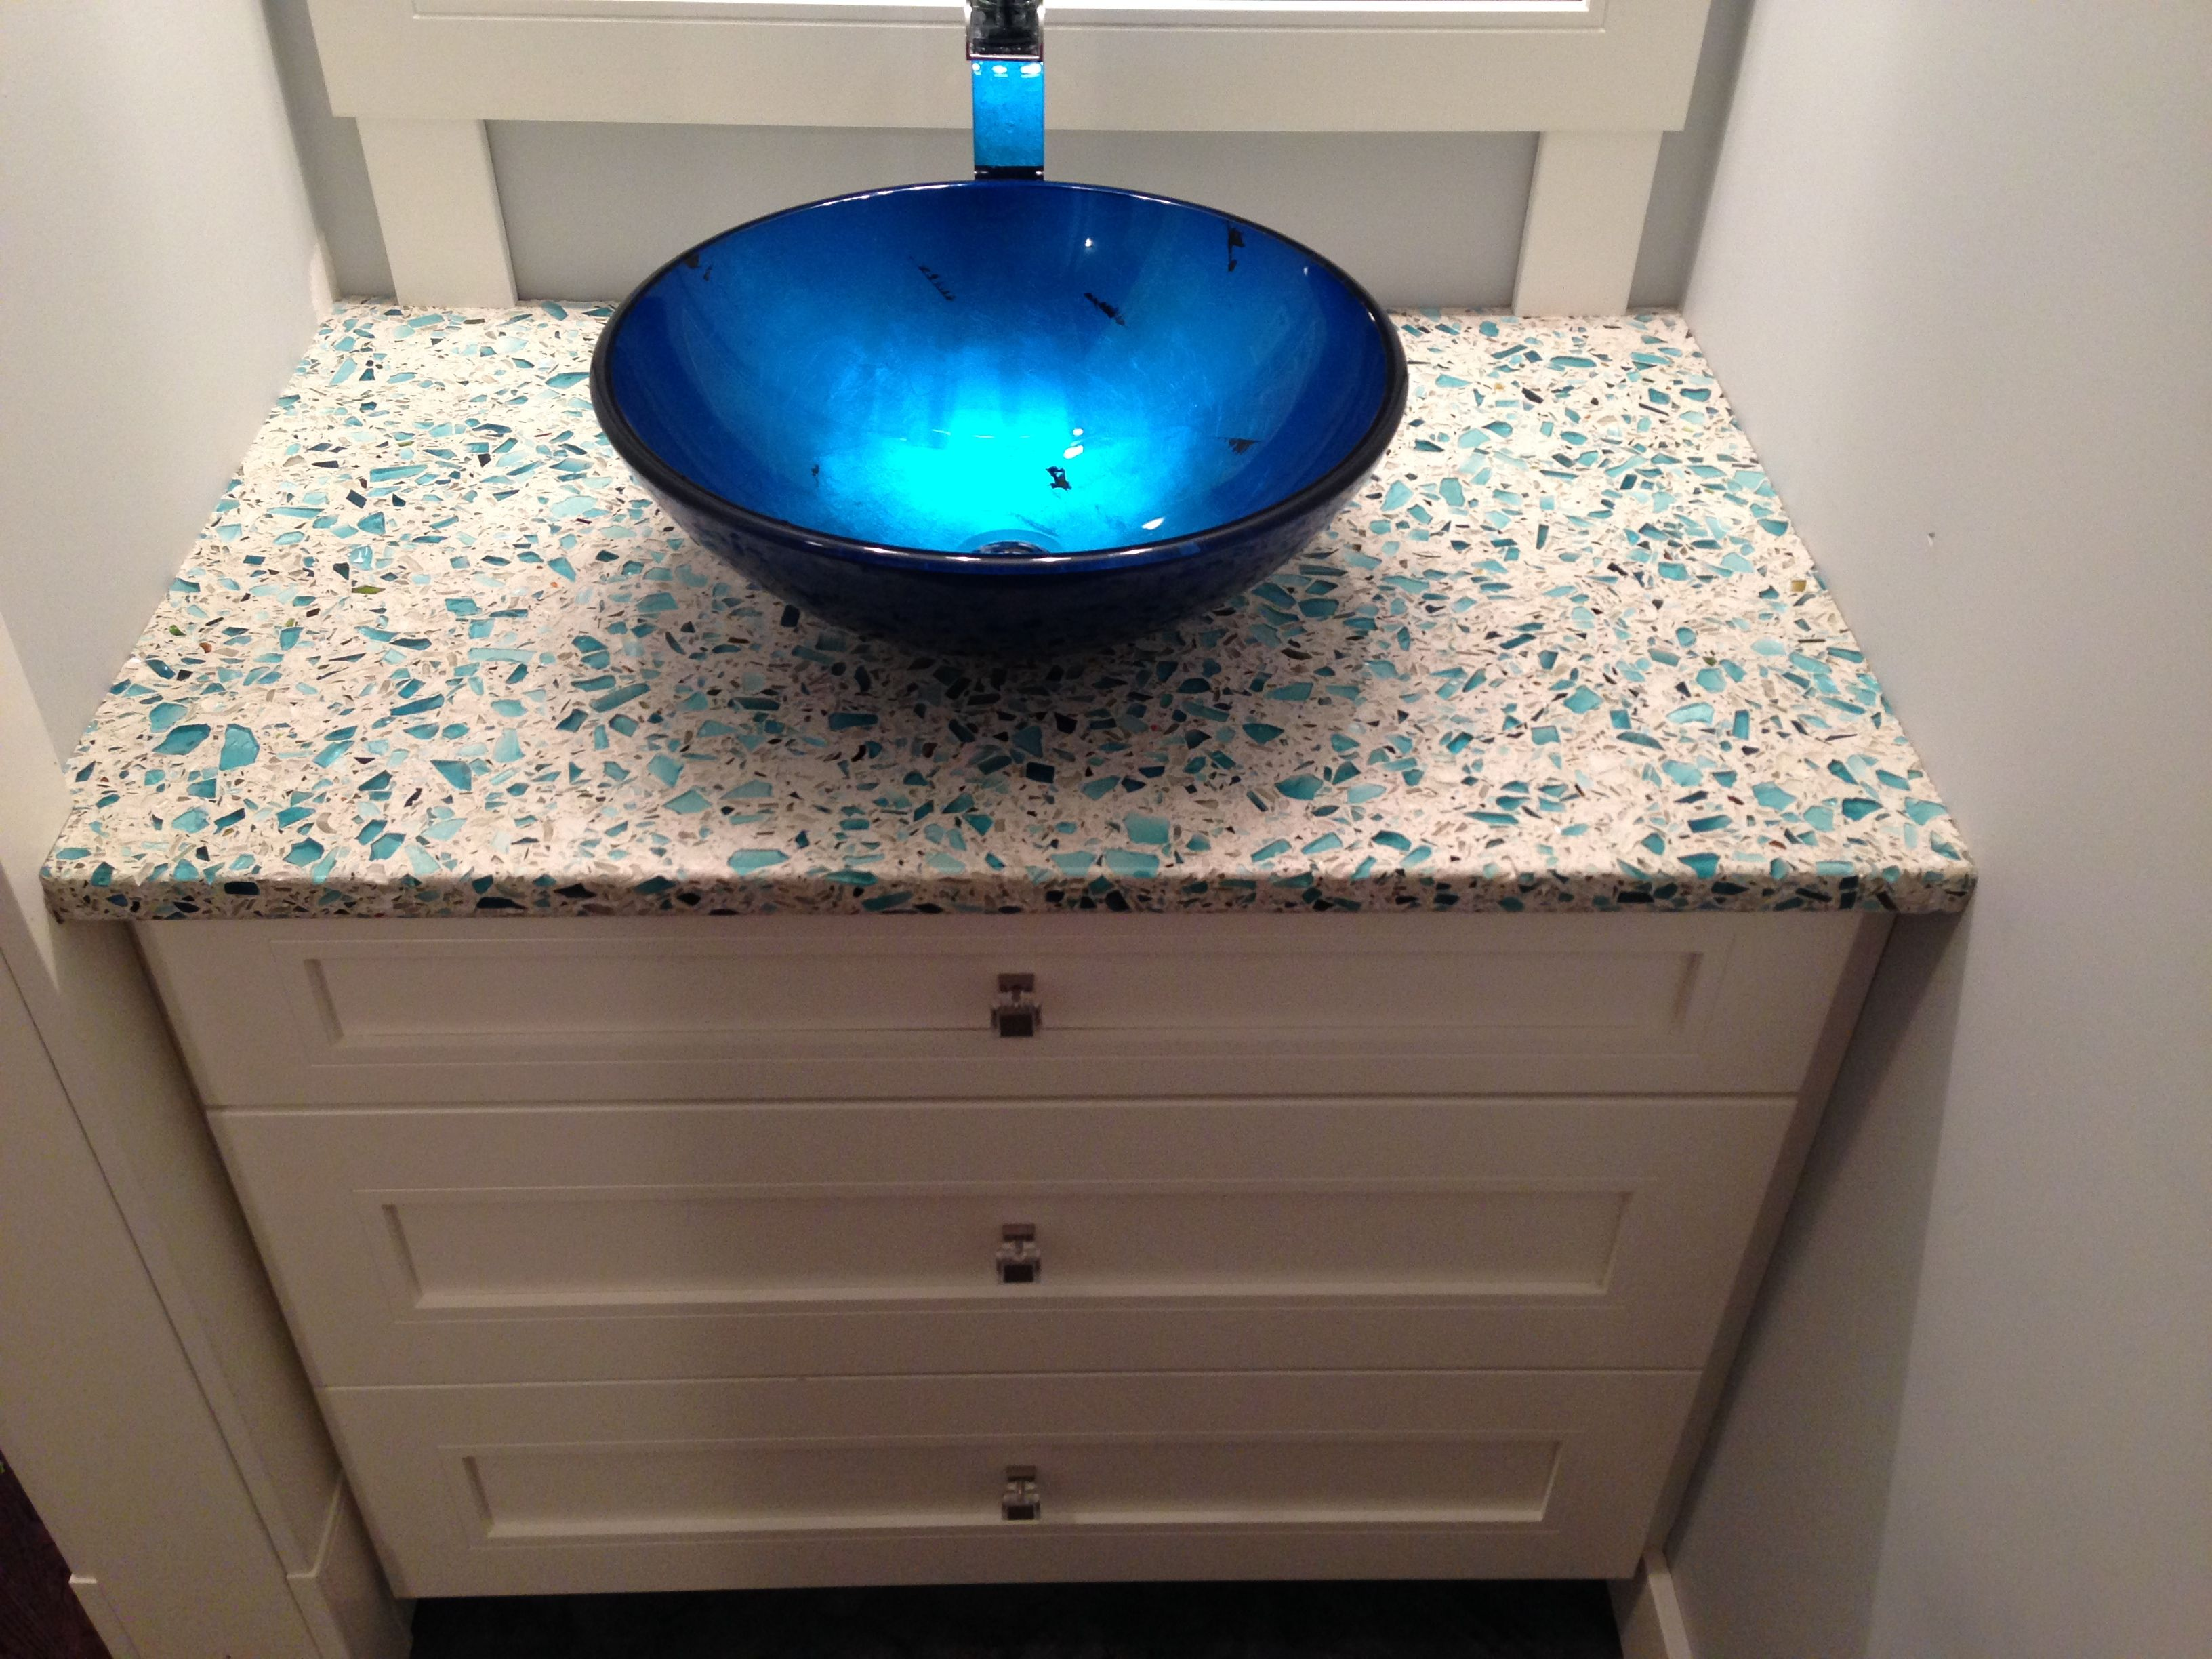 Beautiful Blue Vessel Sink With Blue Vetrazzo Counter Tops.